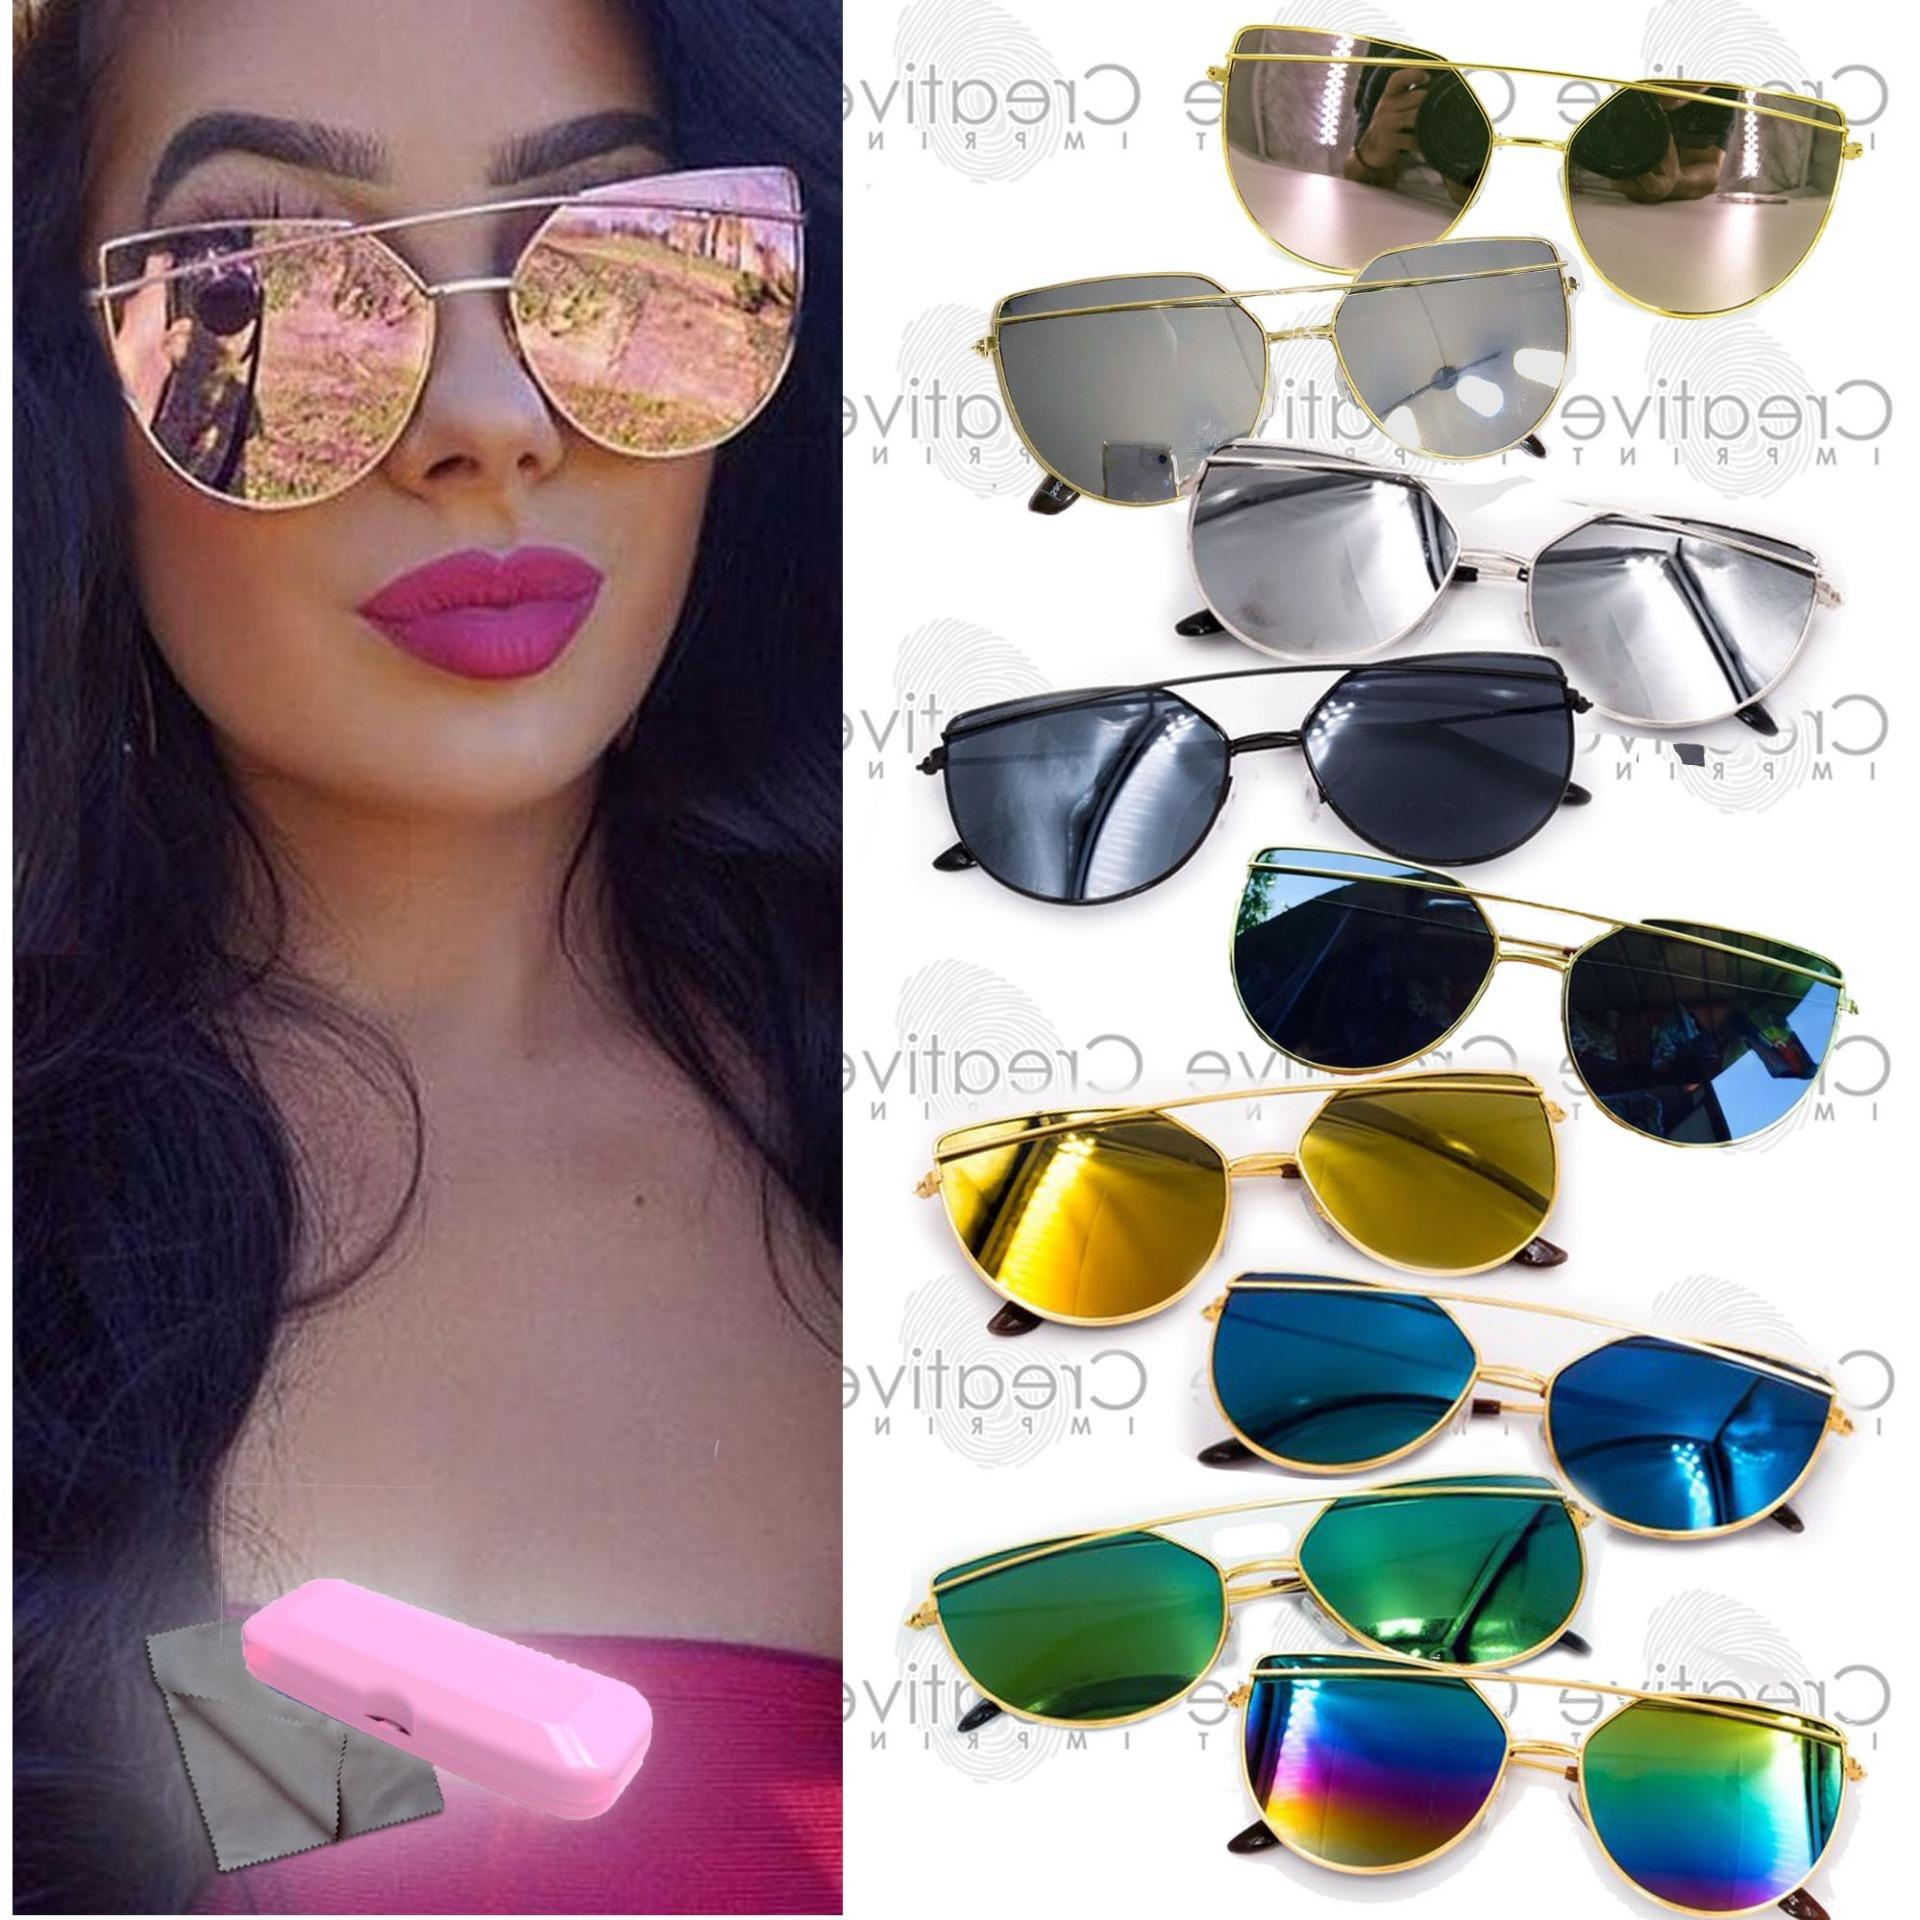 f8893b78a Double Bridge Cat Eye Flat Sunnies Sunglasses (FREE CASE WIPER) Shades  Light Metal Lens